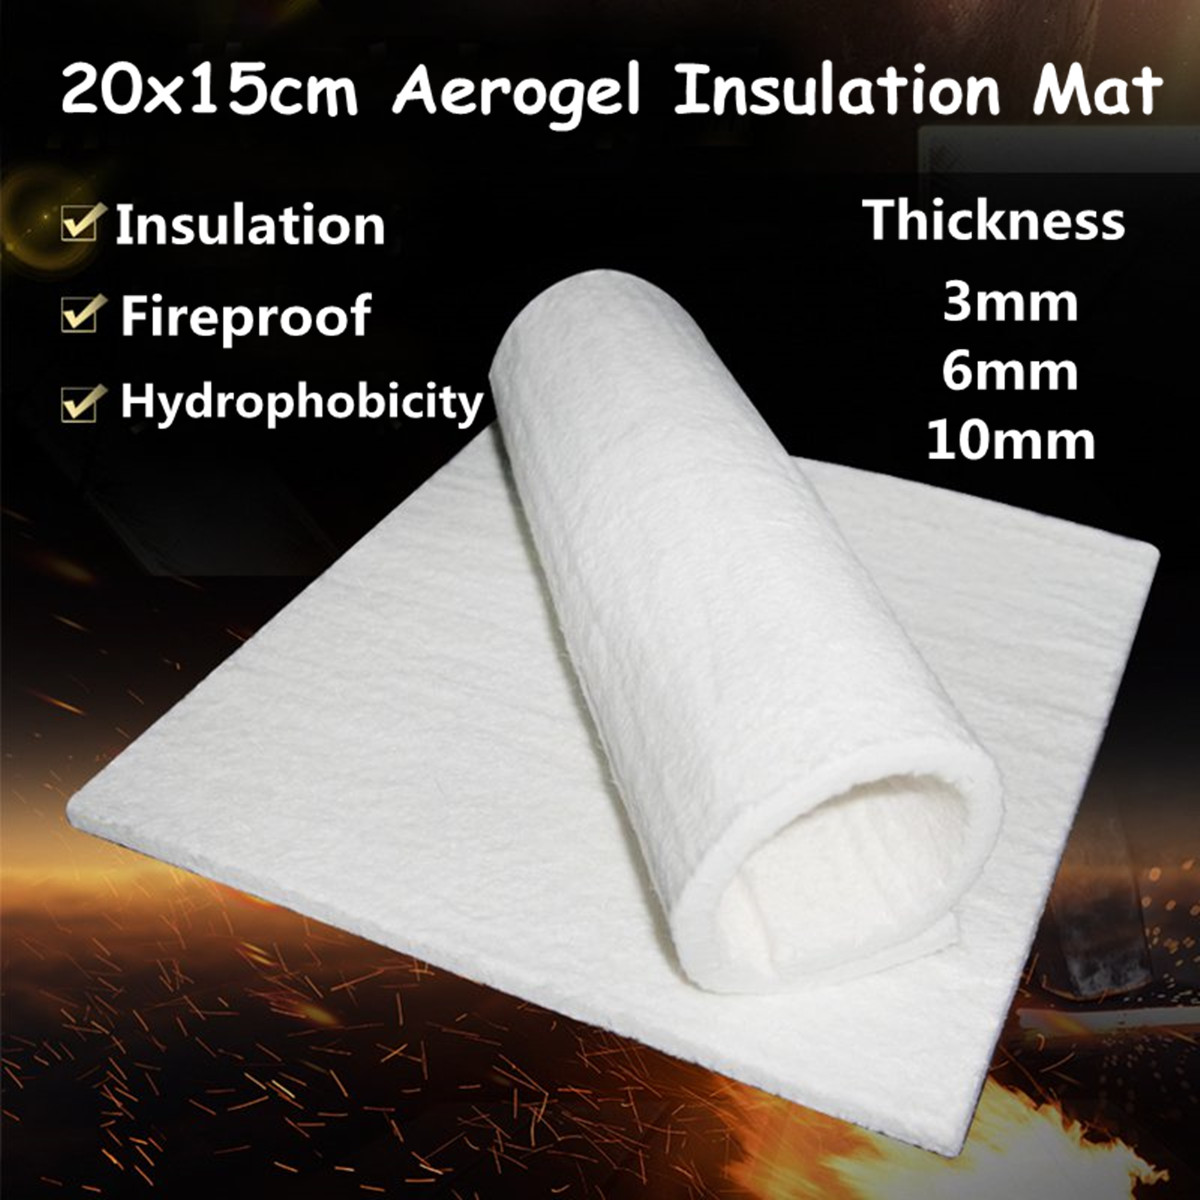 Details about 200x150x10mm Super Light Silica Aerogel Insulation  Hydrophobic Mat Industrial